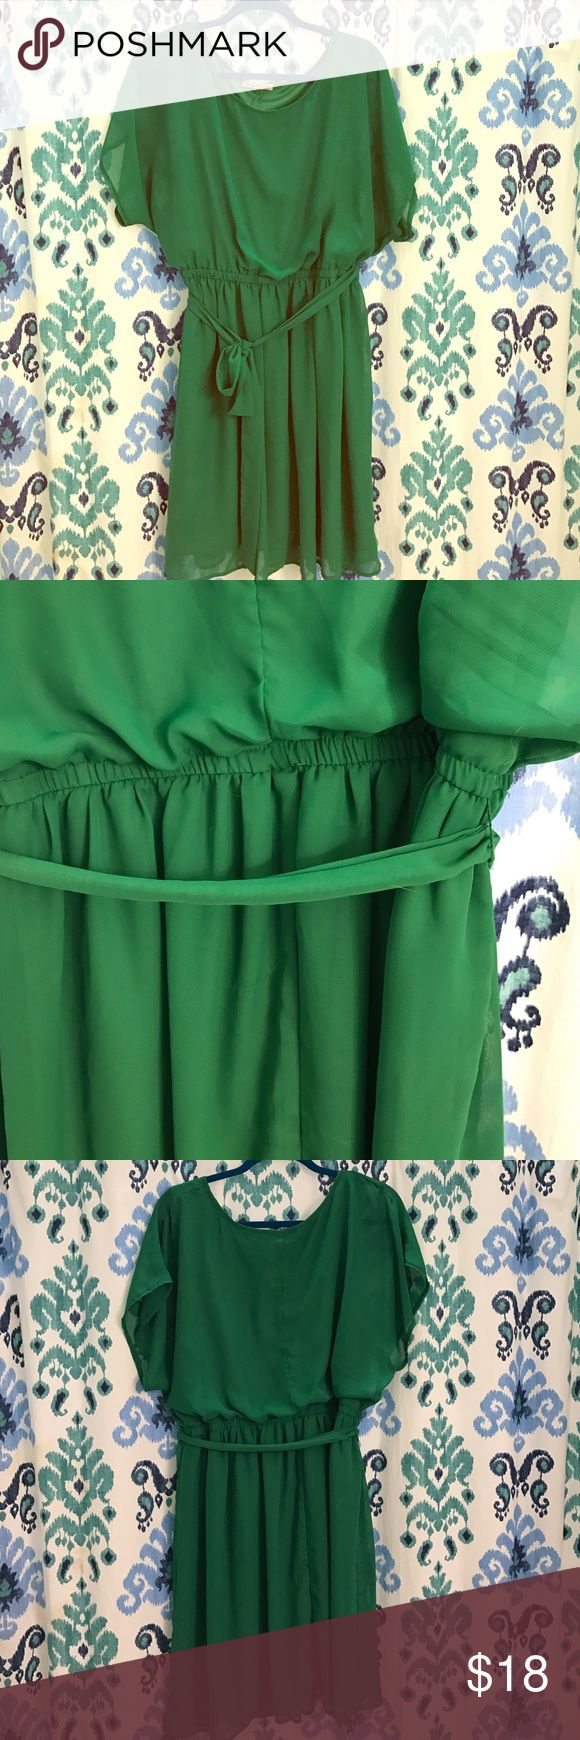 Vintage Kelly Green Dress Vintage dress. Fully lined, no size listed, but fits like an XL due to fully elastic waist band. Beautiful color and quality condition. No stains or snags. Vintage Dresses Midi